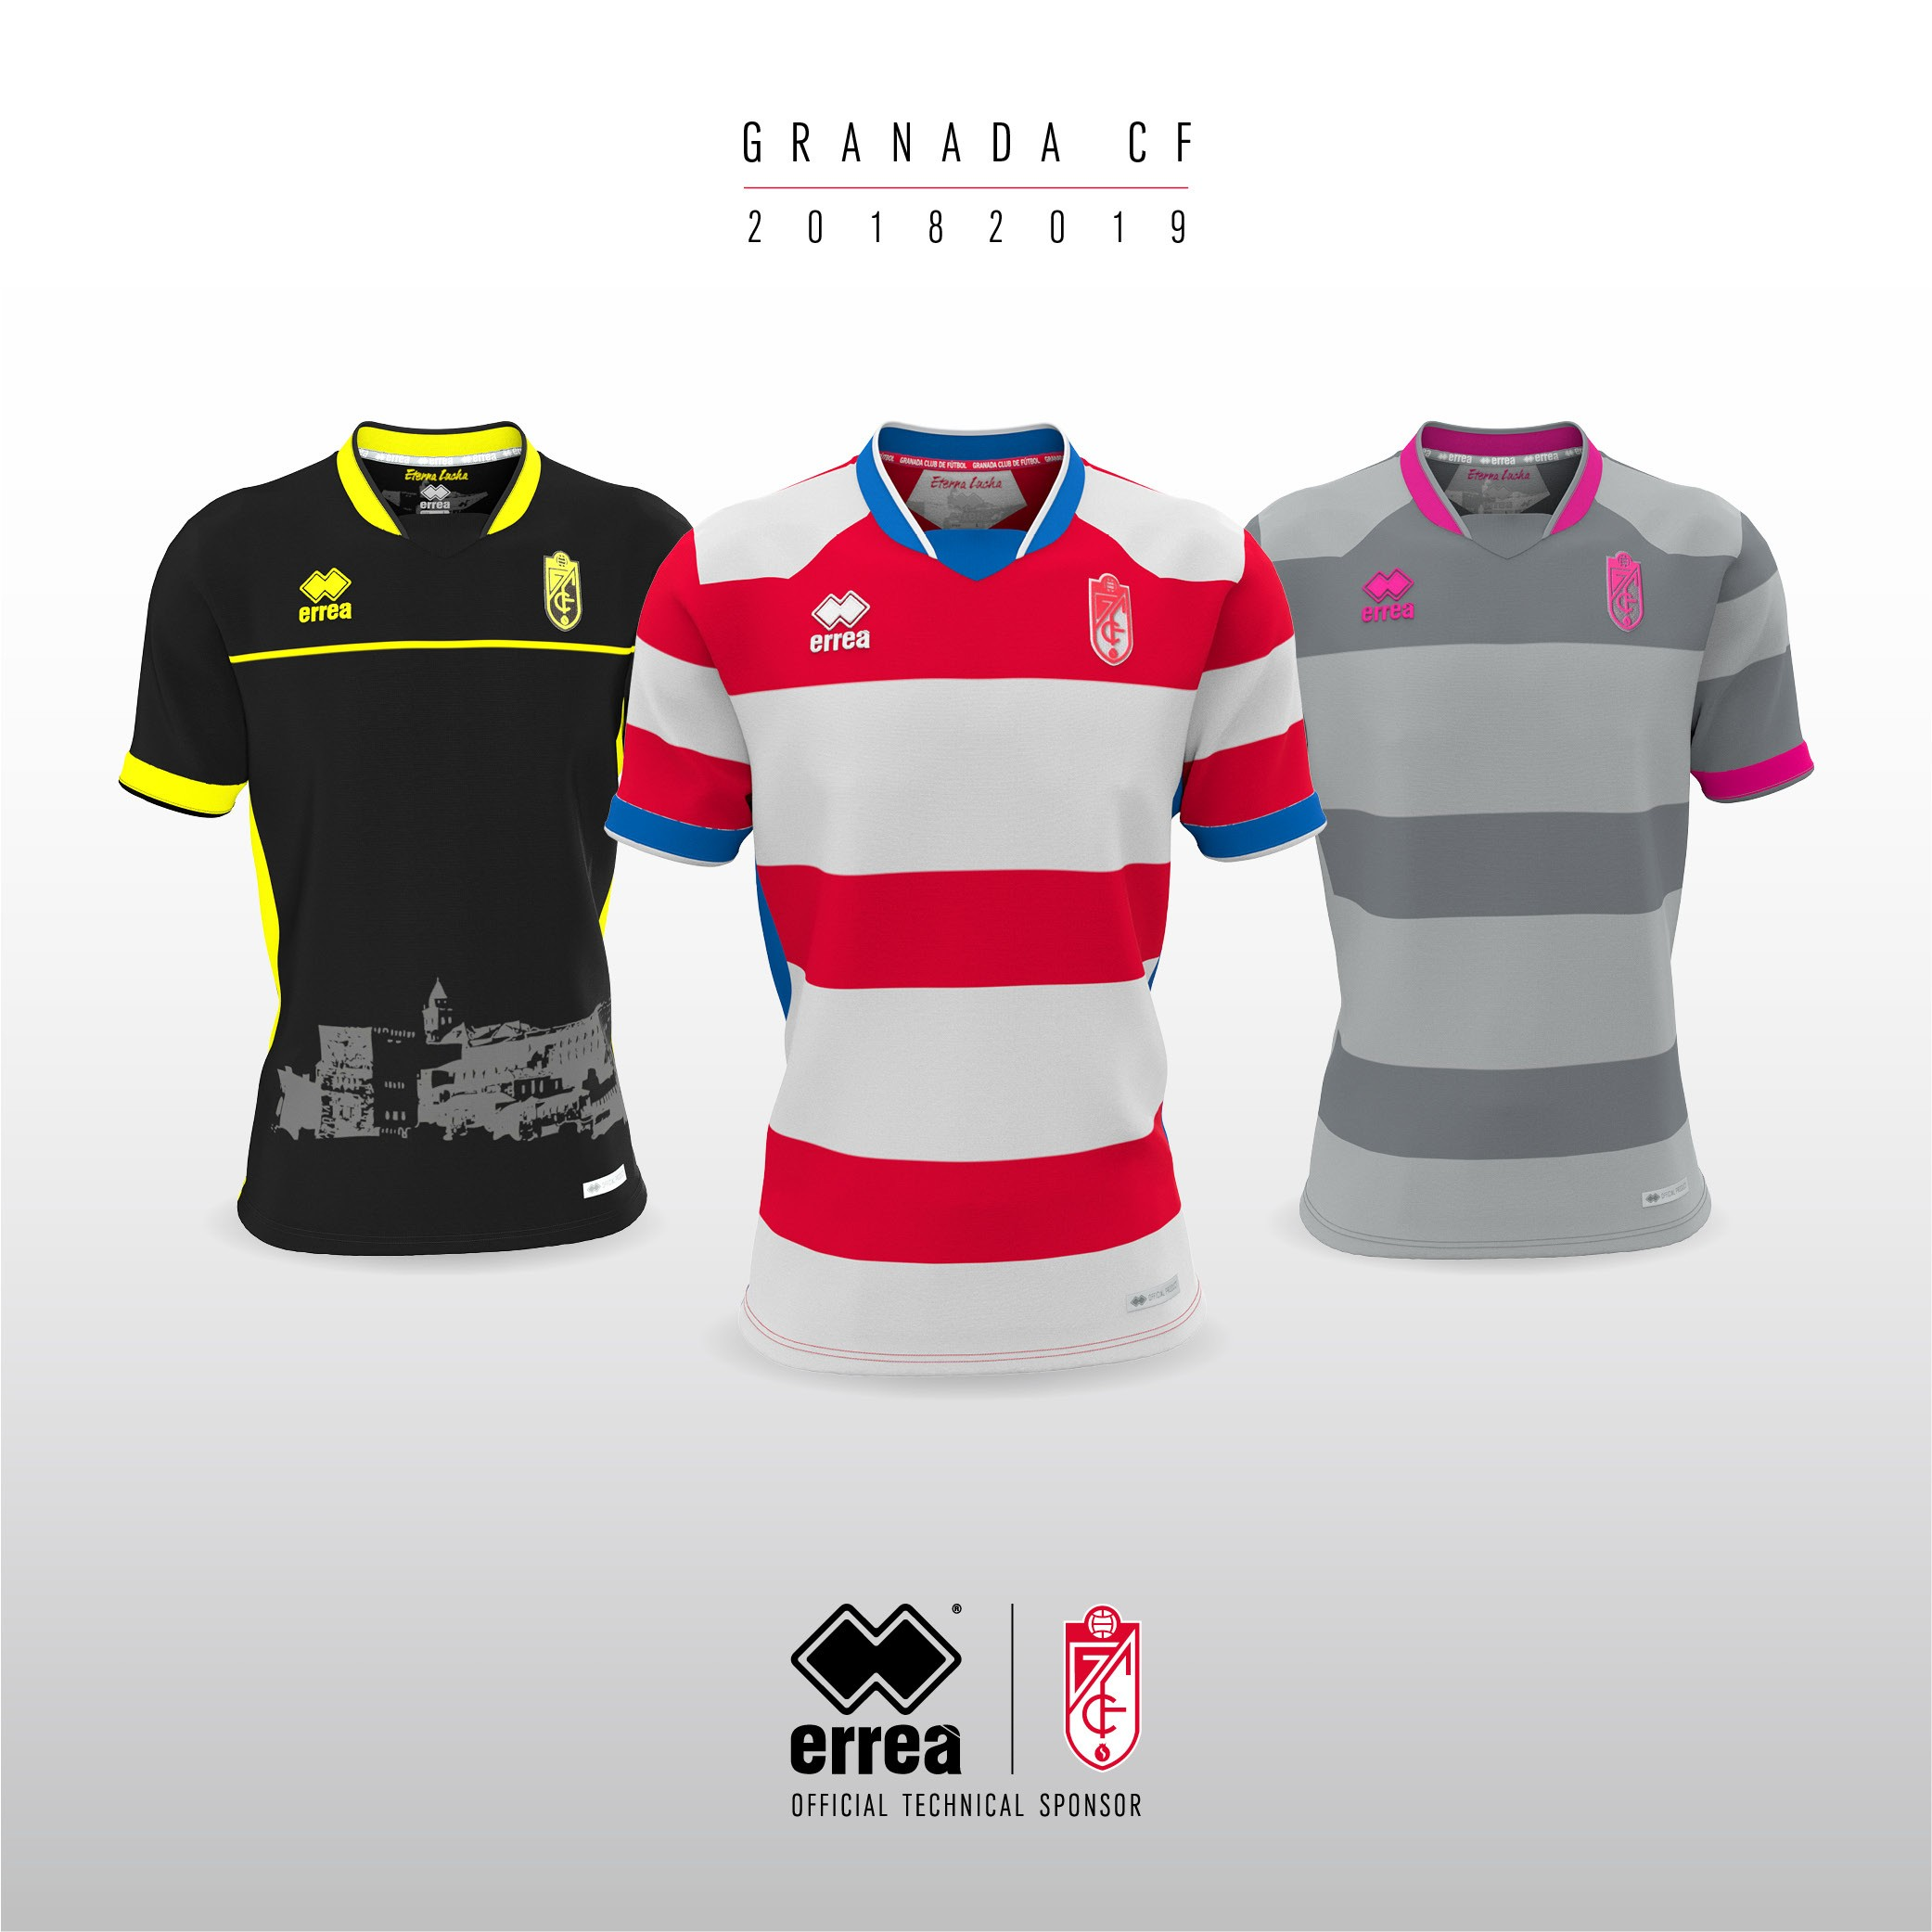 Granada CF's new official 2018-2019 shirts from Erreà Sport bring together the classical and the innovative